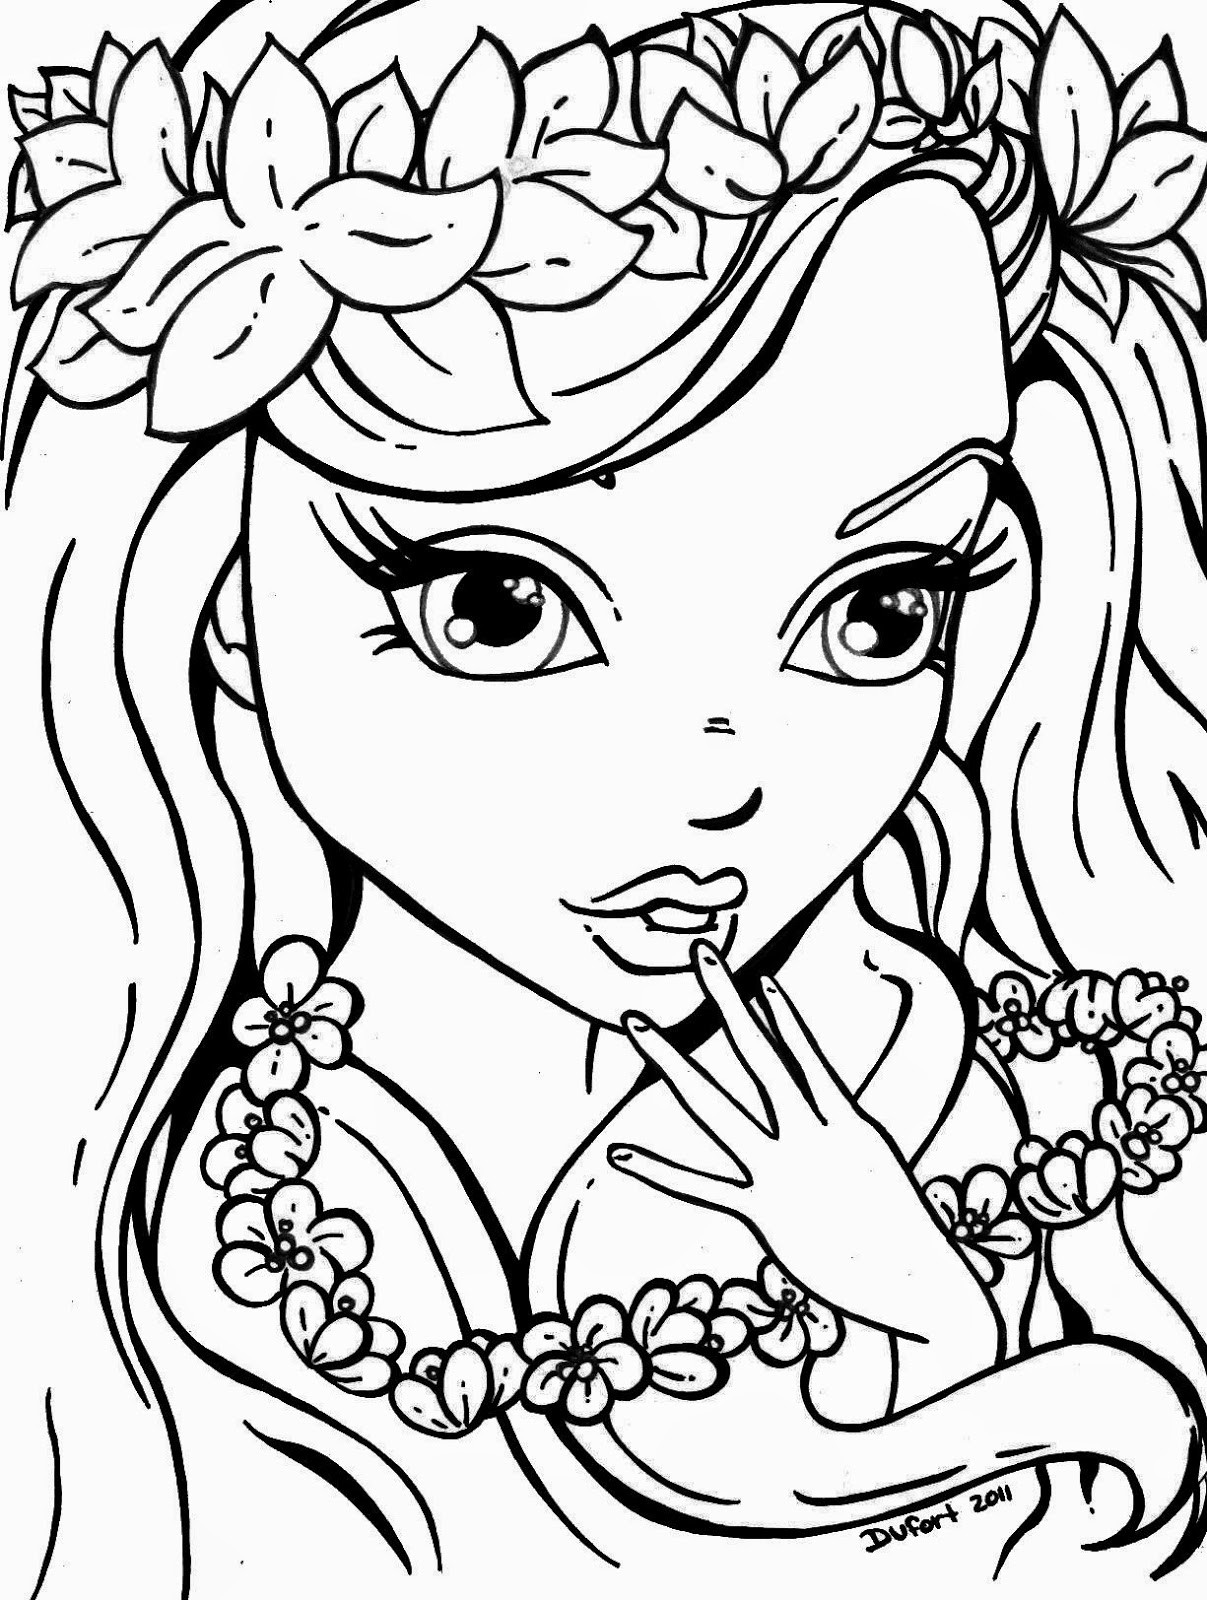 Cute Coloring Sheets For Girls  cute coloring sheets for girls